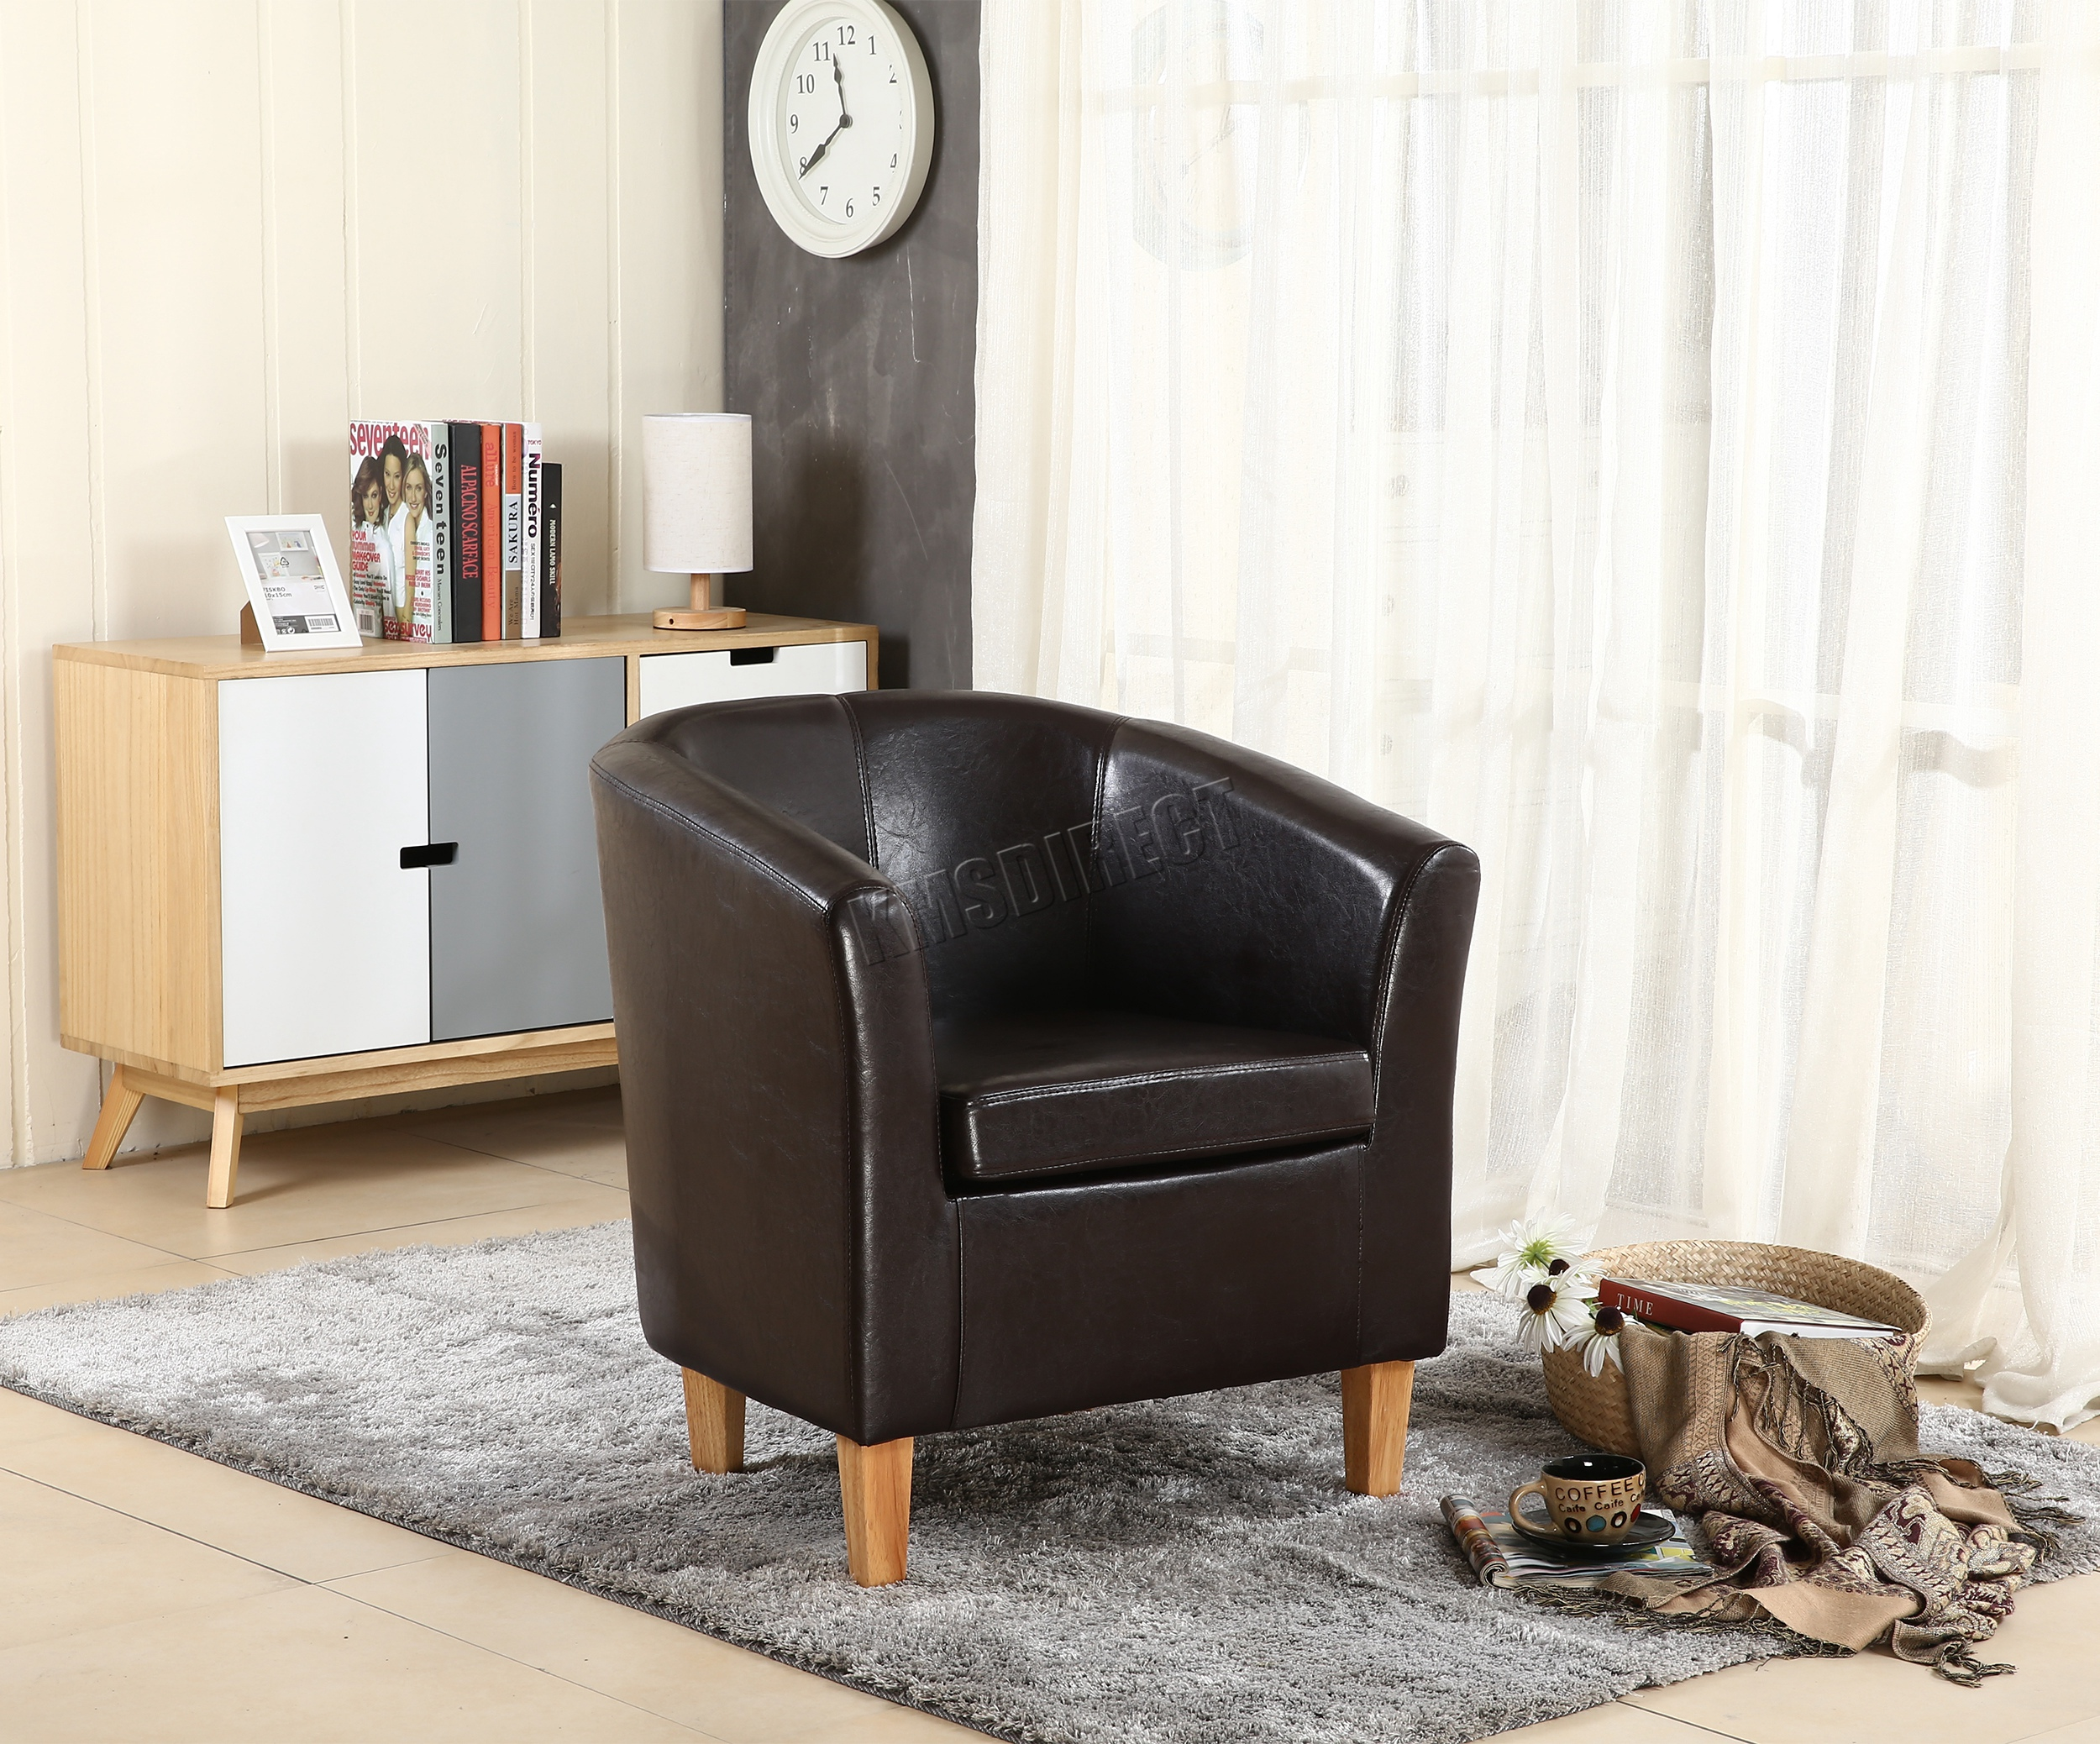 Sentinel FoxHunter Brown Faux Leather Tub Chair Armchair Dining Room Lounge  Furniture New